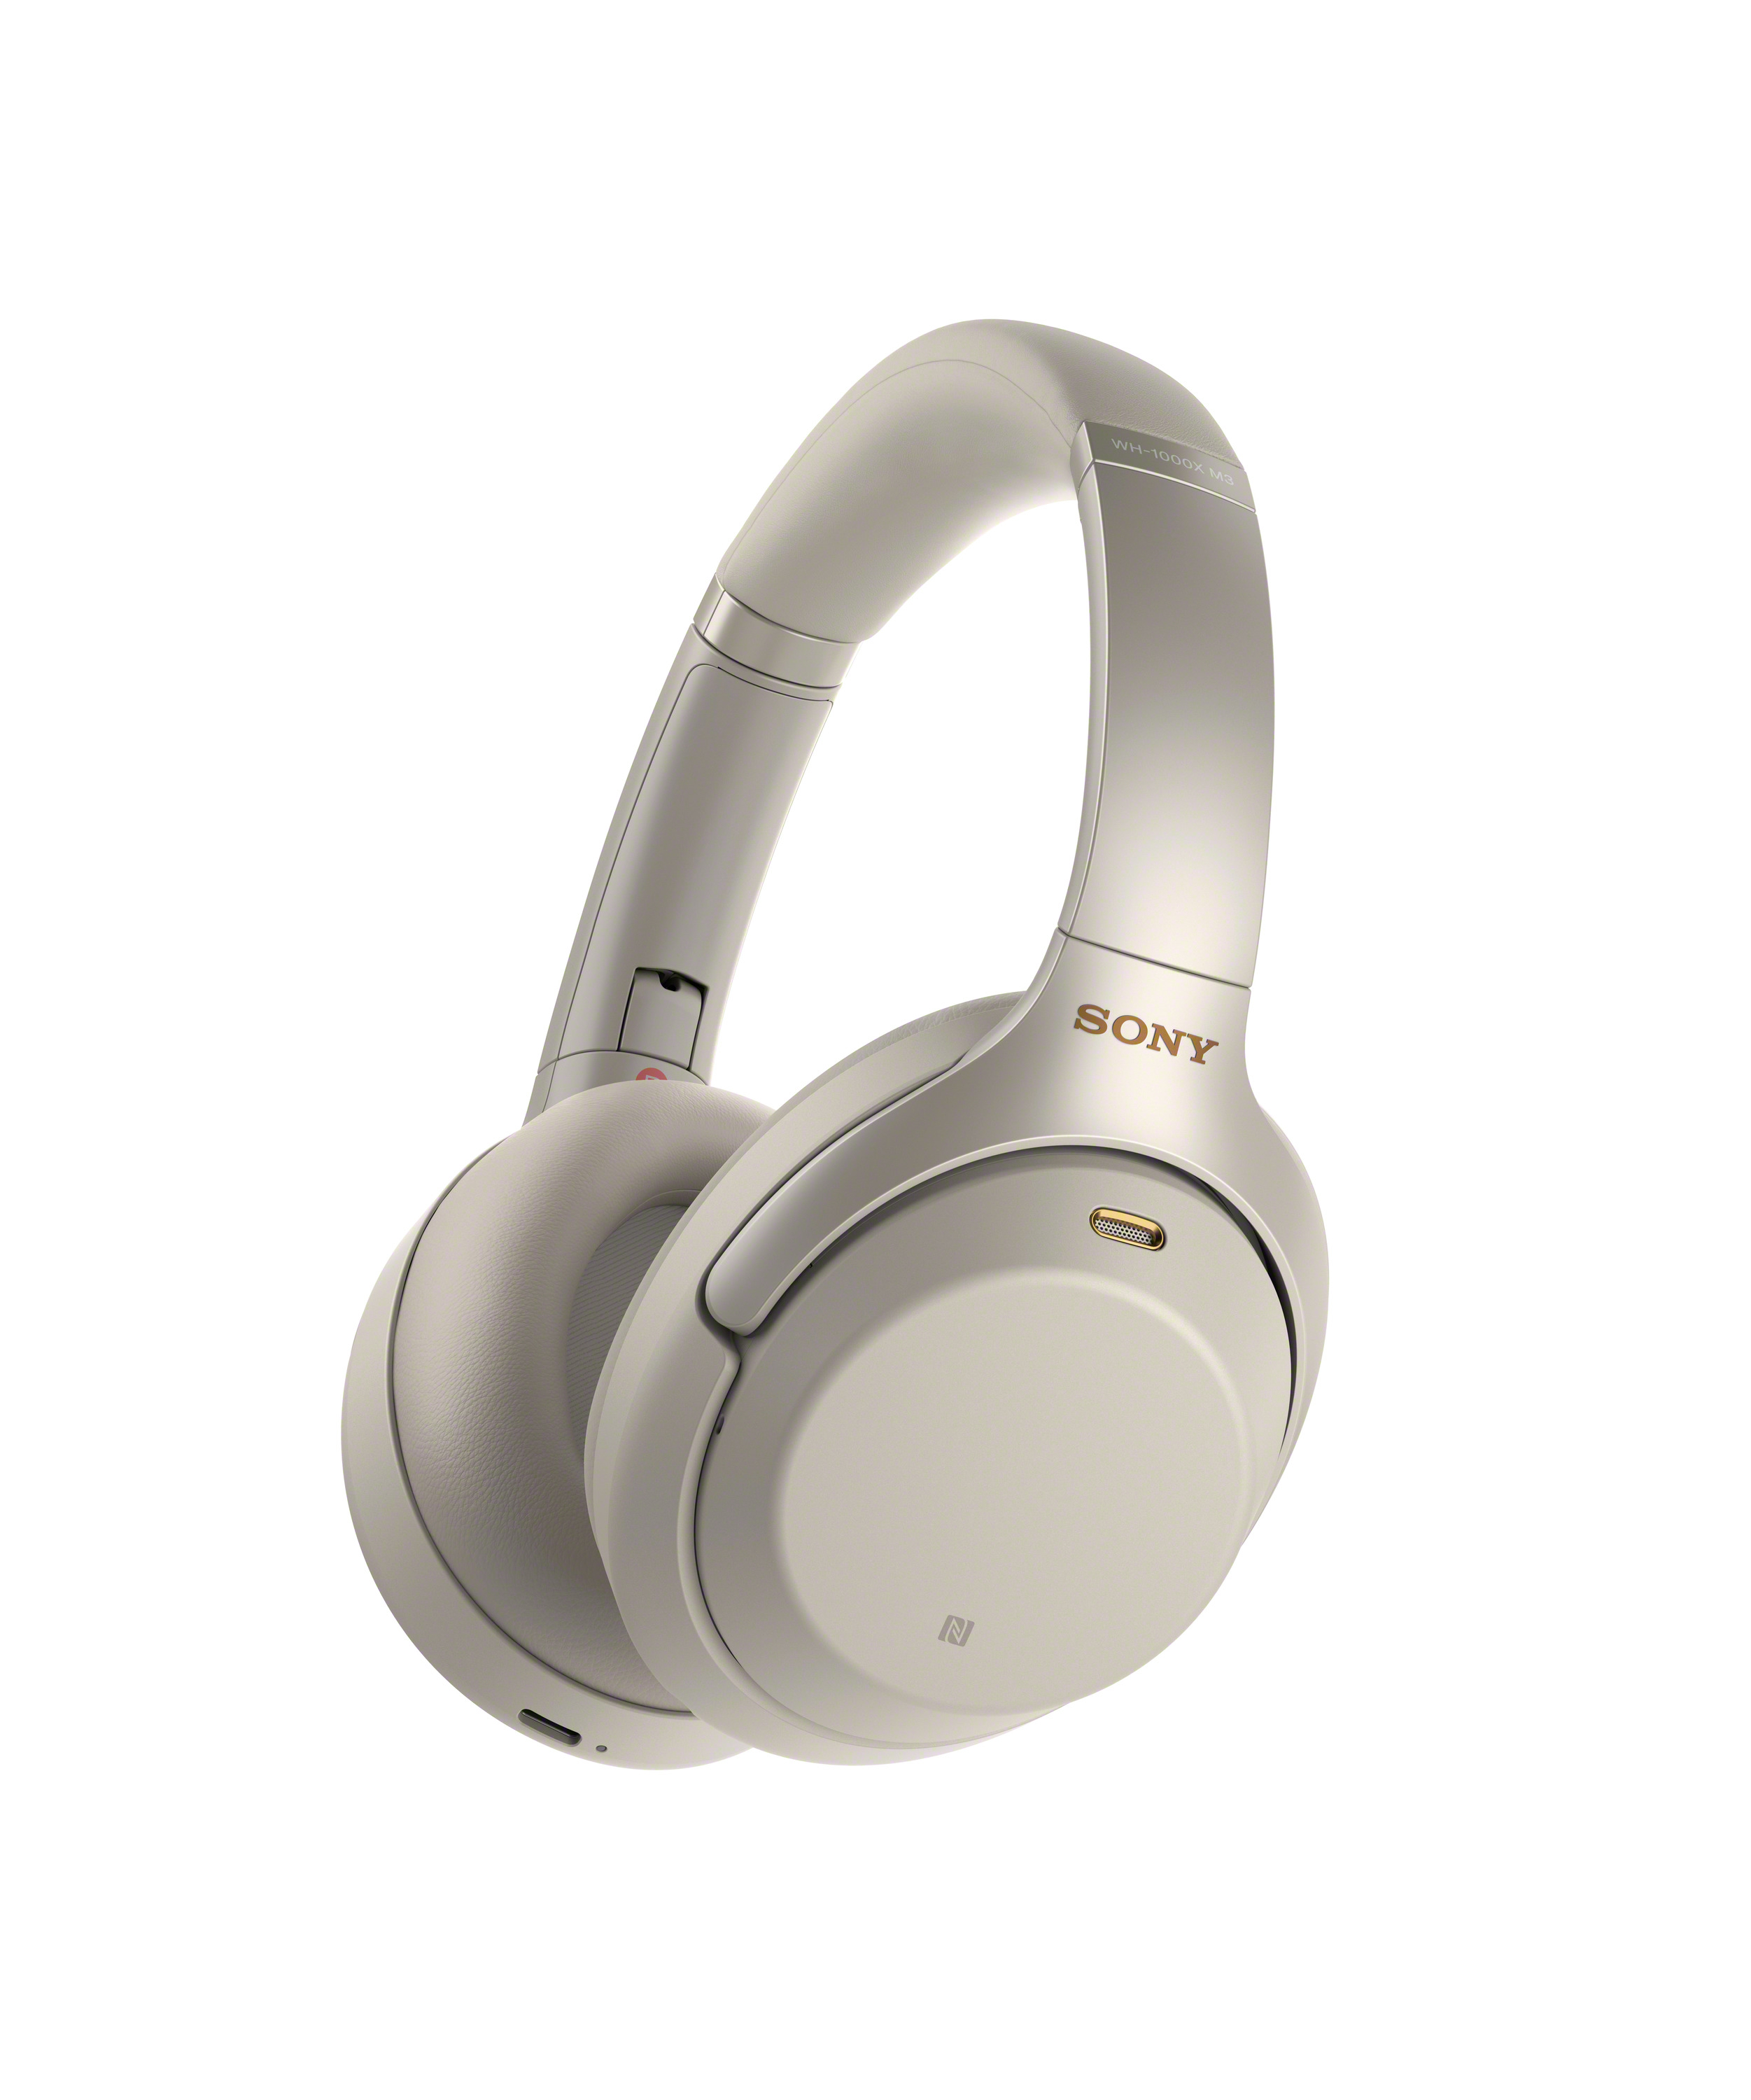 NEW Sony's Industry Leading Noise Canceling WH-1000XM3 Headphones - silver